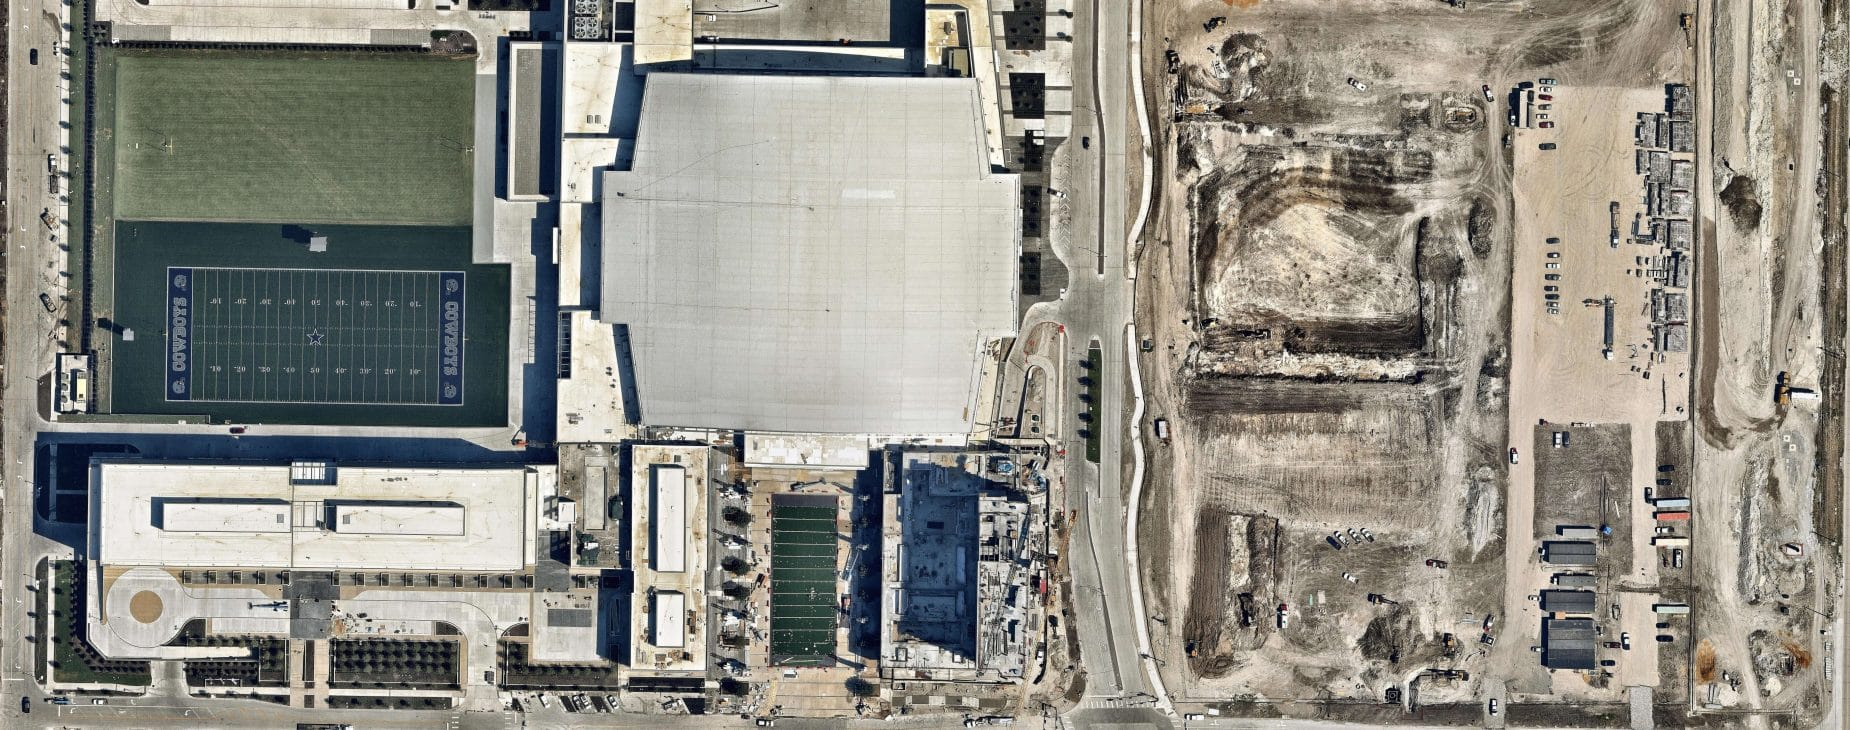 frisco-aerial-imagery